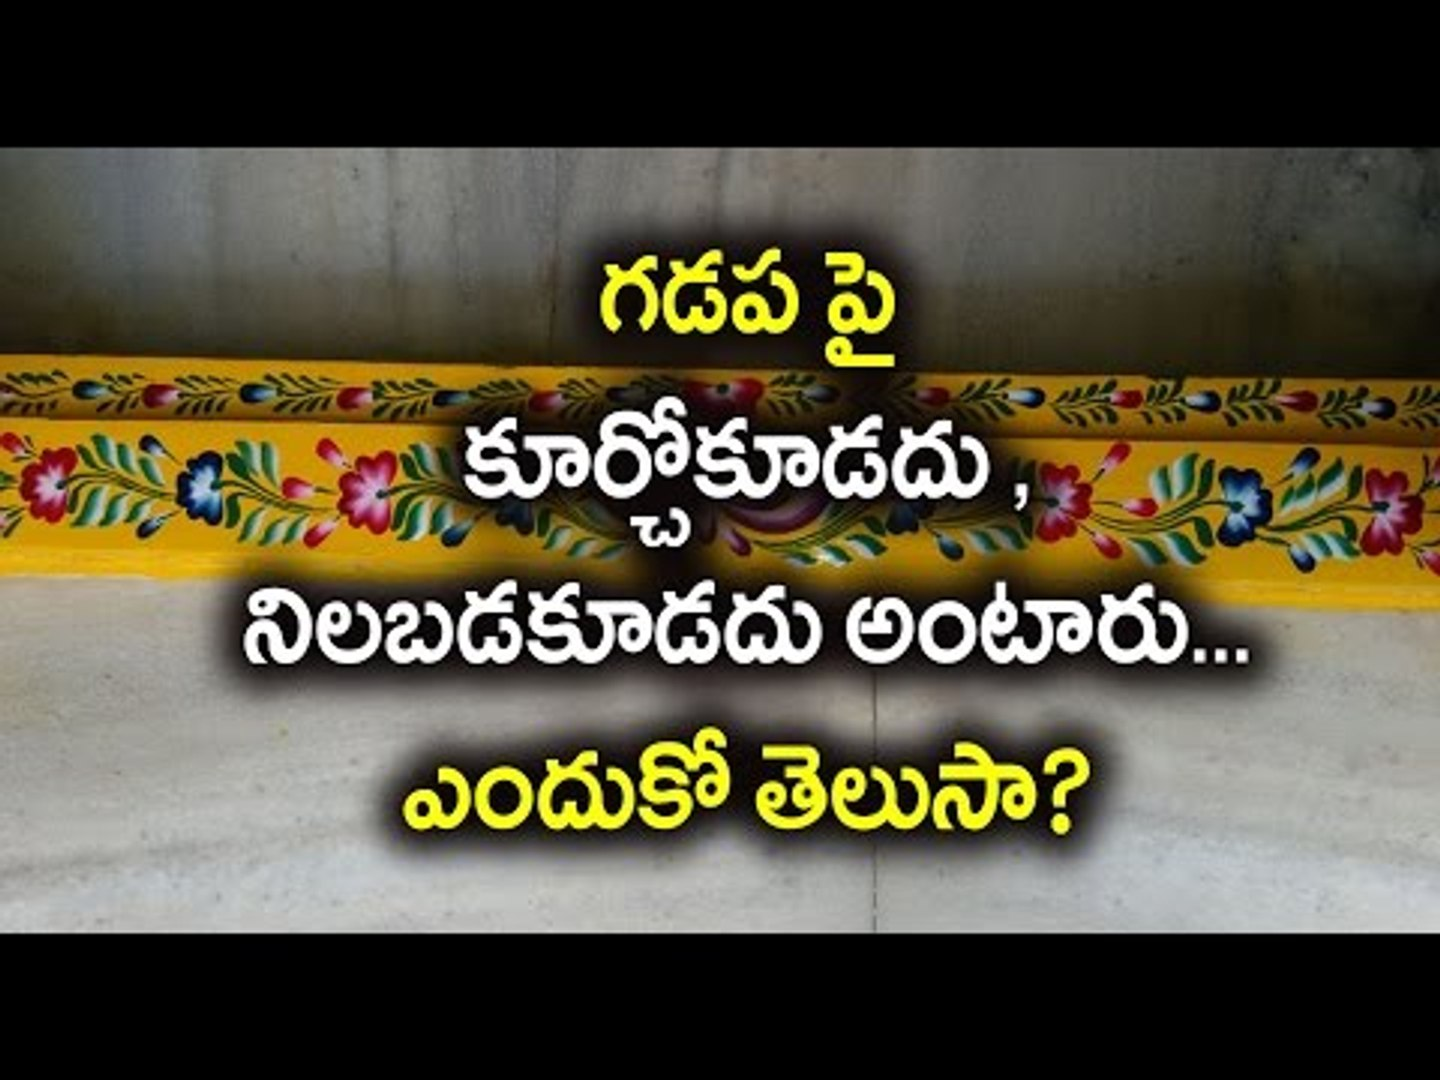 We Shouldn't Stand and Sit on the Threshold(Gadapa), Why - Oneindia Telugu